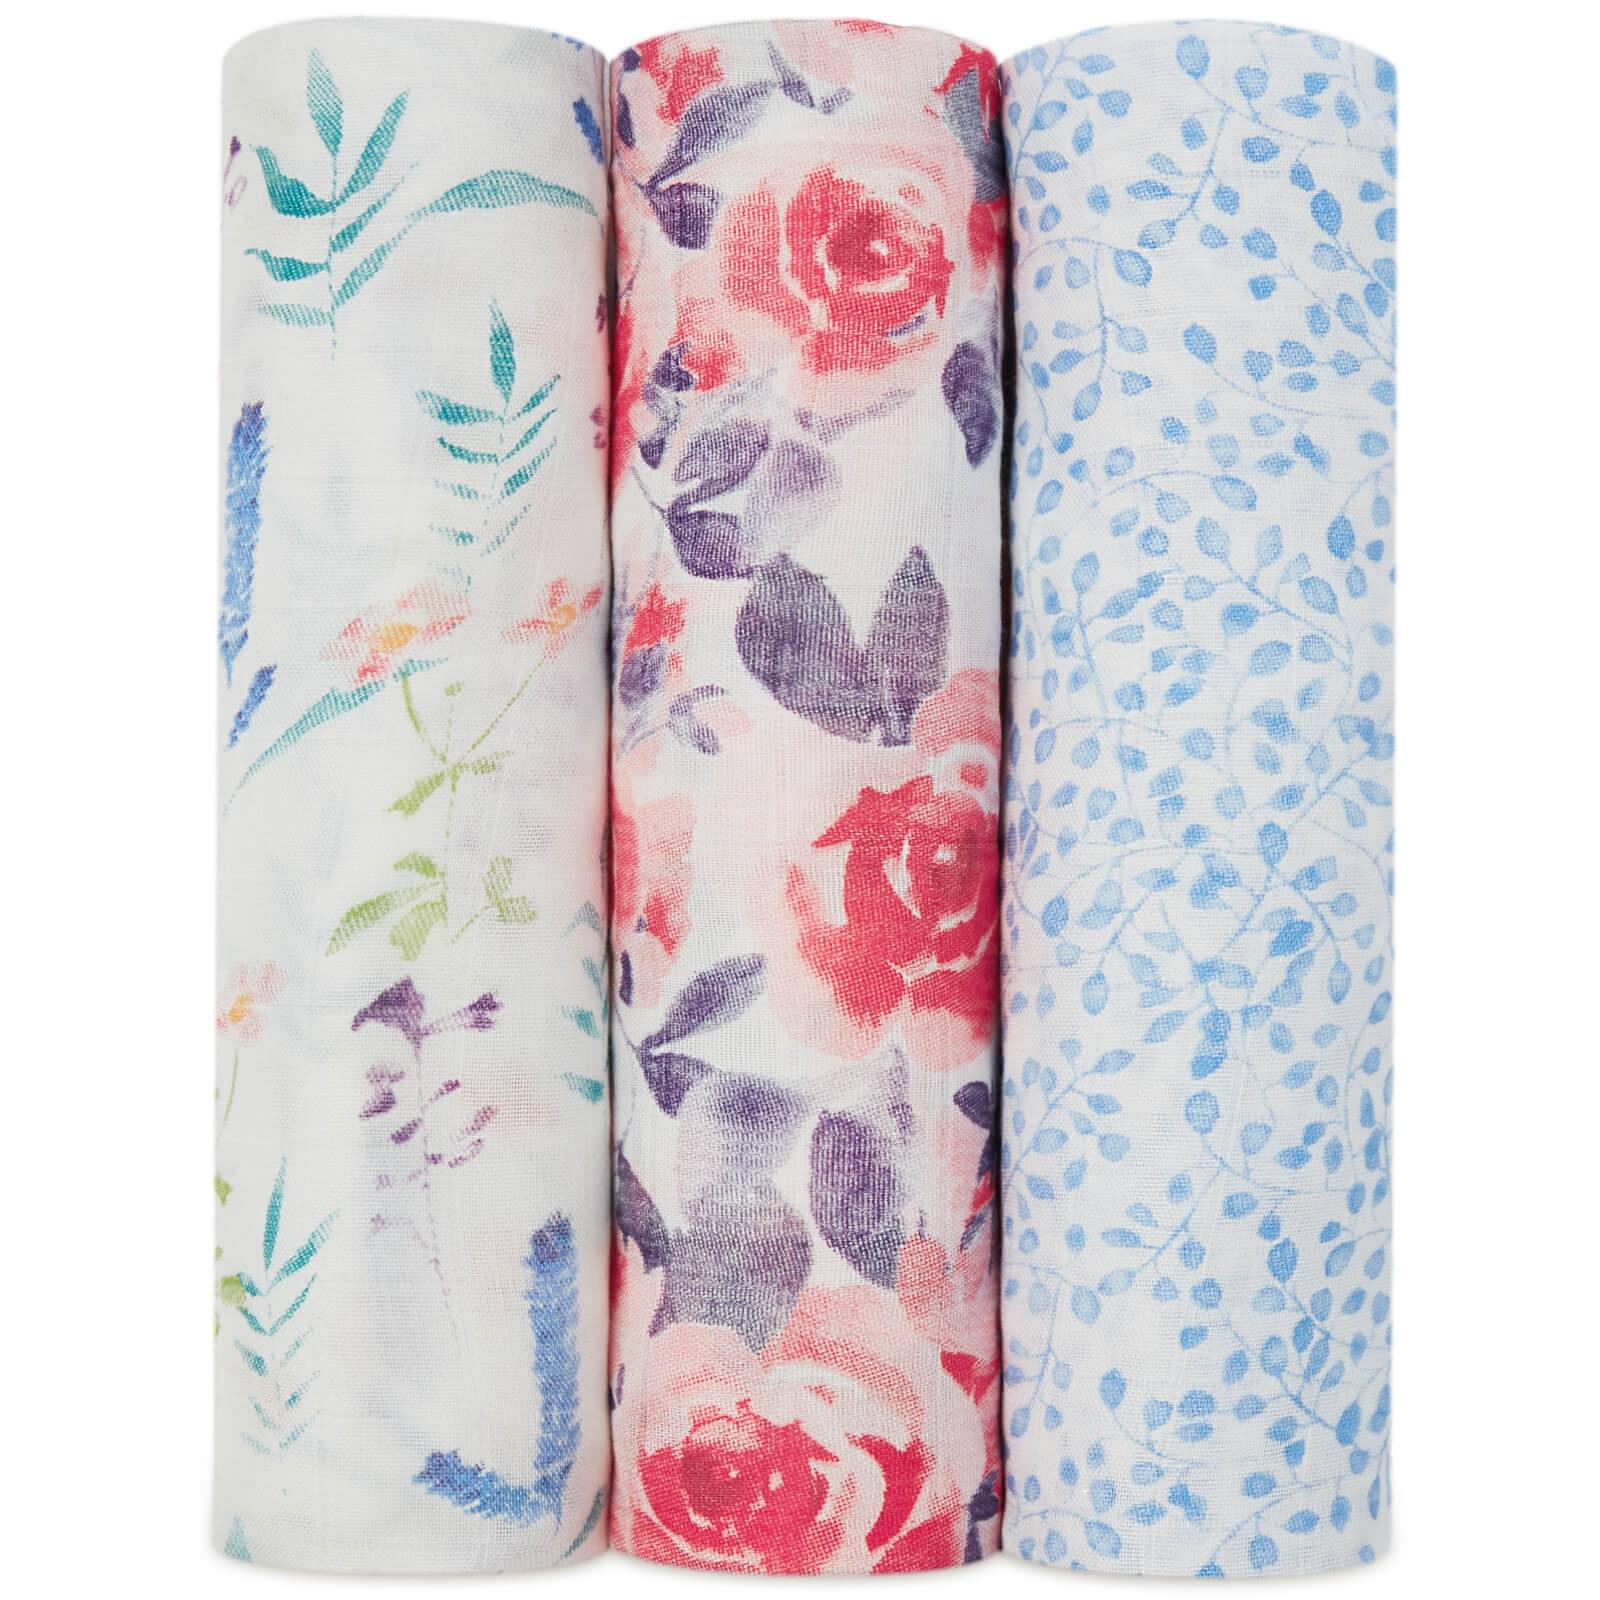 aden + anais Silky Soft Swaddles - Watercolour Garden (3 Pack)